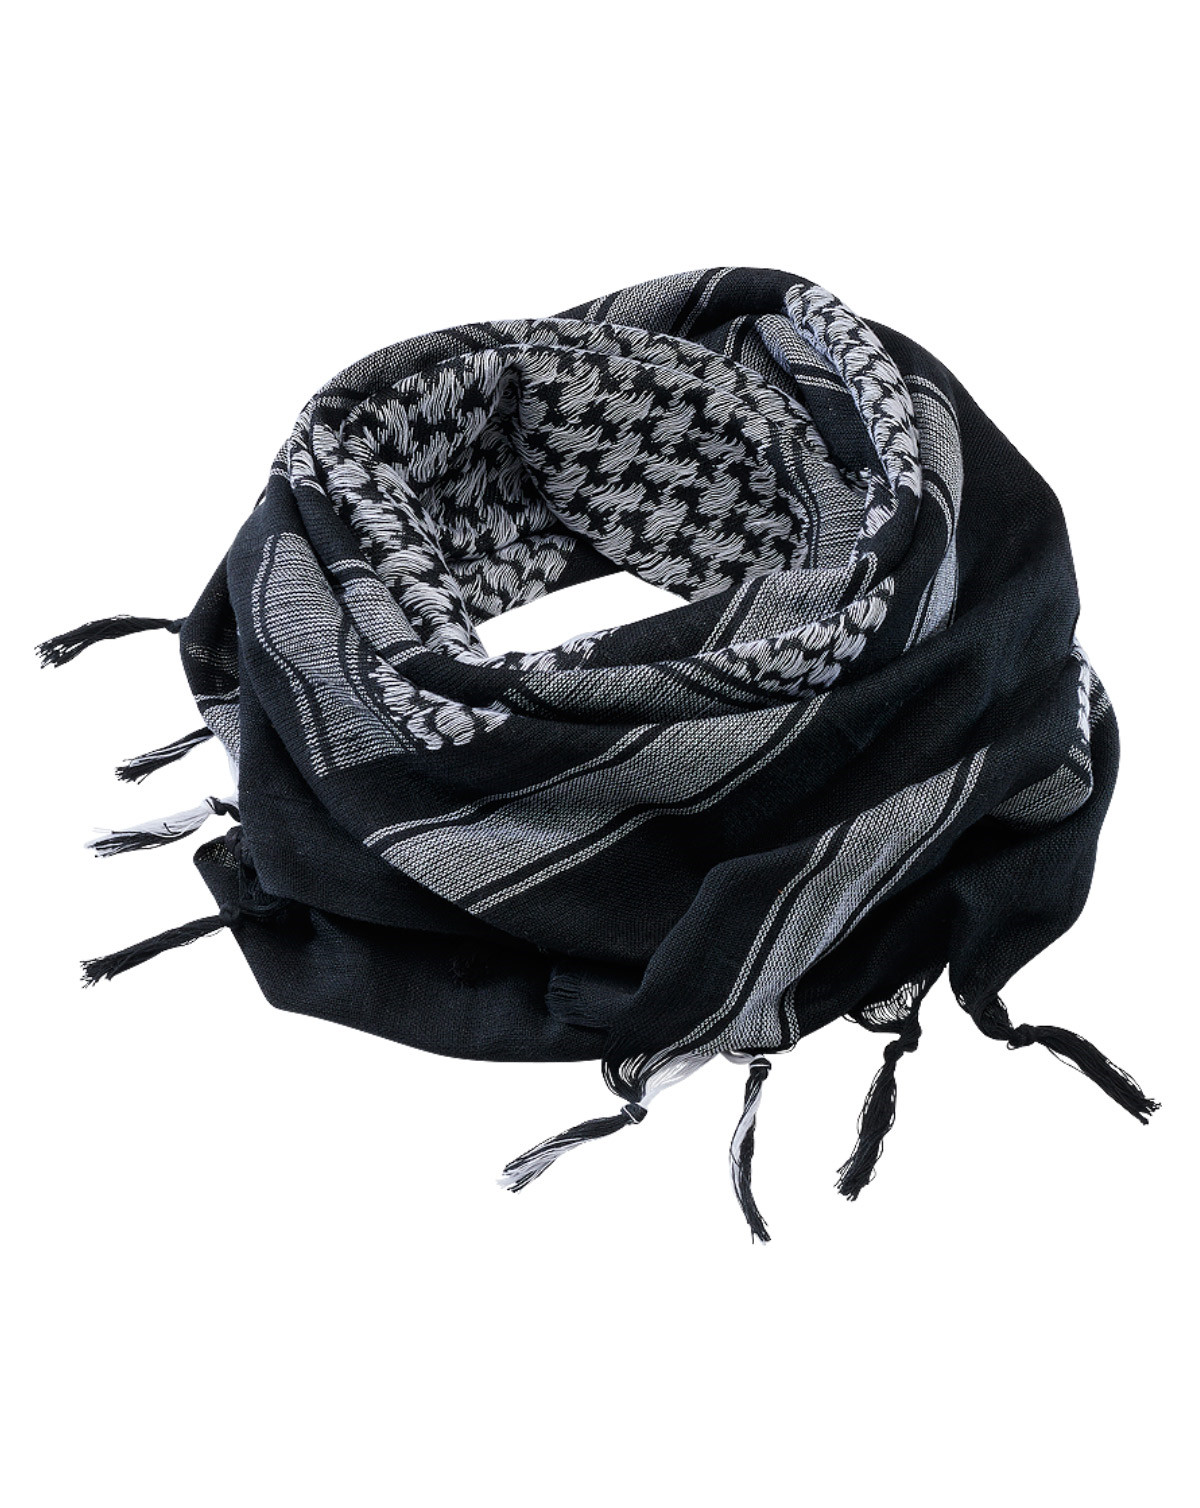 Image of   Brandit Shemag Scarf (Sort / Hvid, One Size)